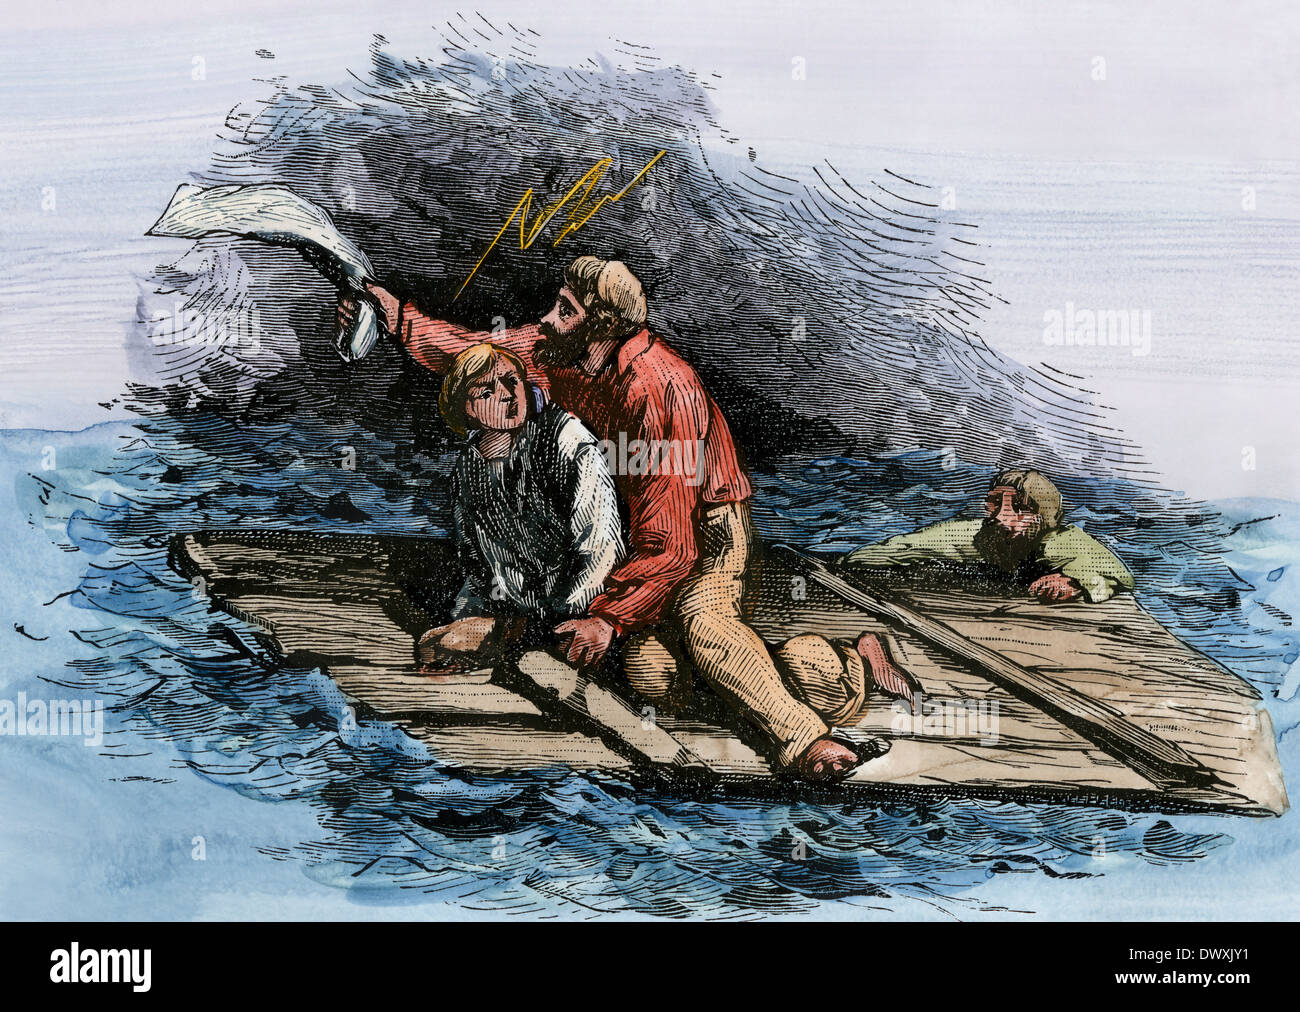 Victims of the SS Central America, wrecked in a hurricane, 1857. Hand-colored woodcut - Stock Image